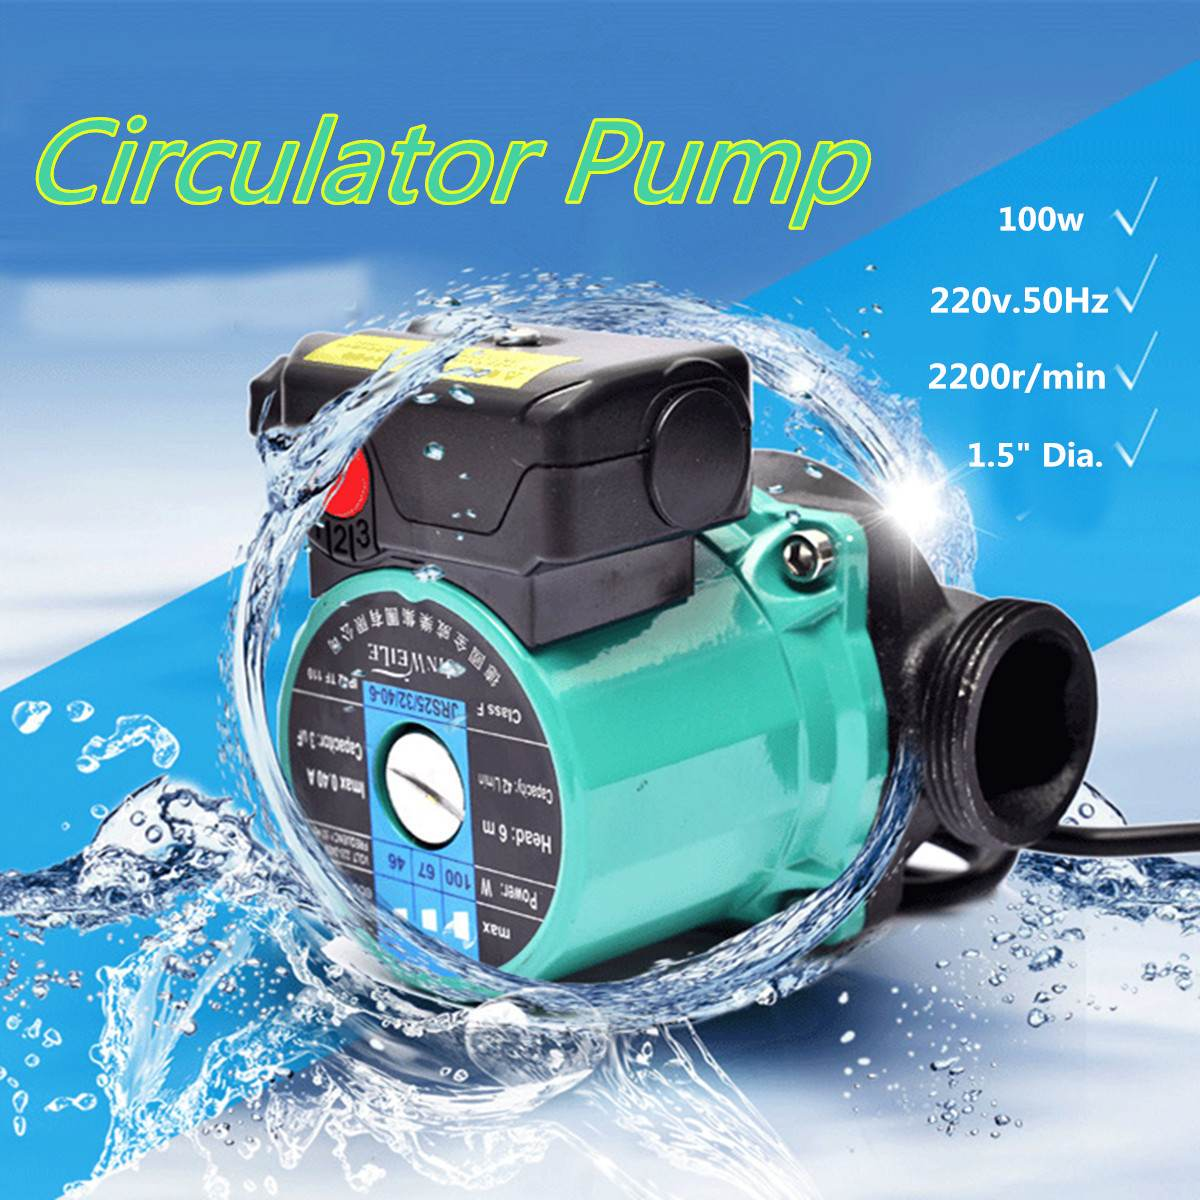 100W 220V Indoor Hot Water Air Heating Circulator Boiler Pump Adjustable Switch Heating System Circulation Pumps Accessories